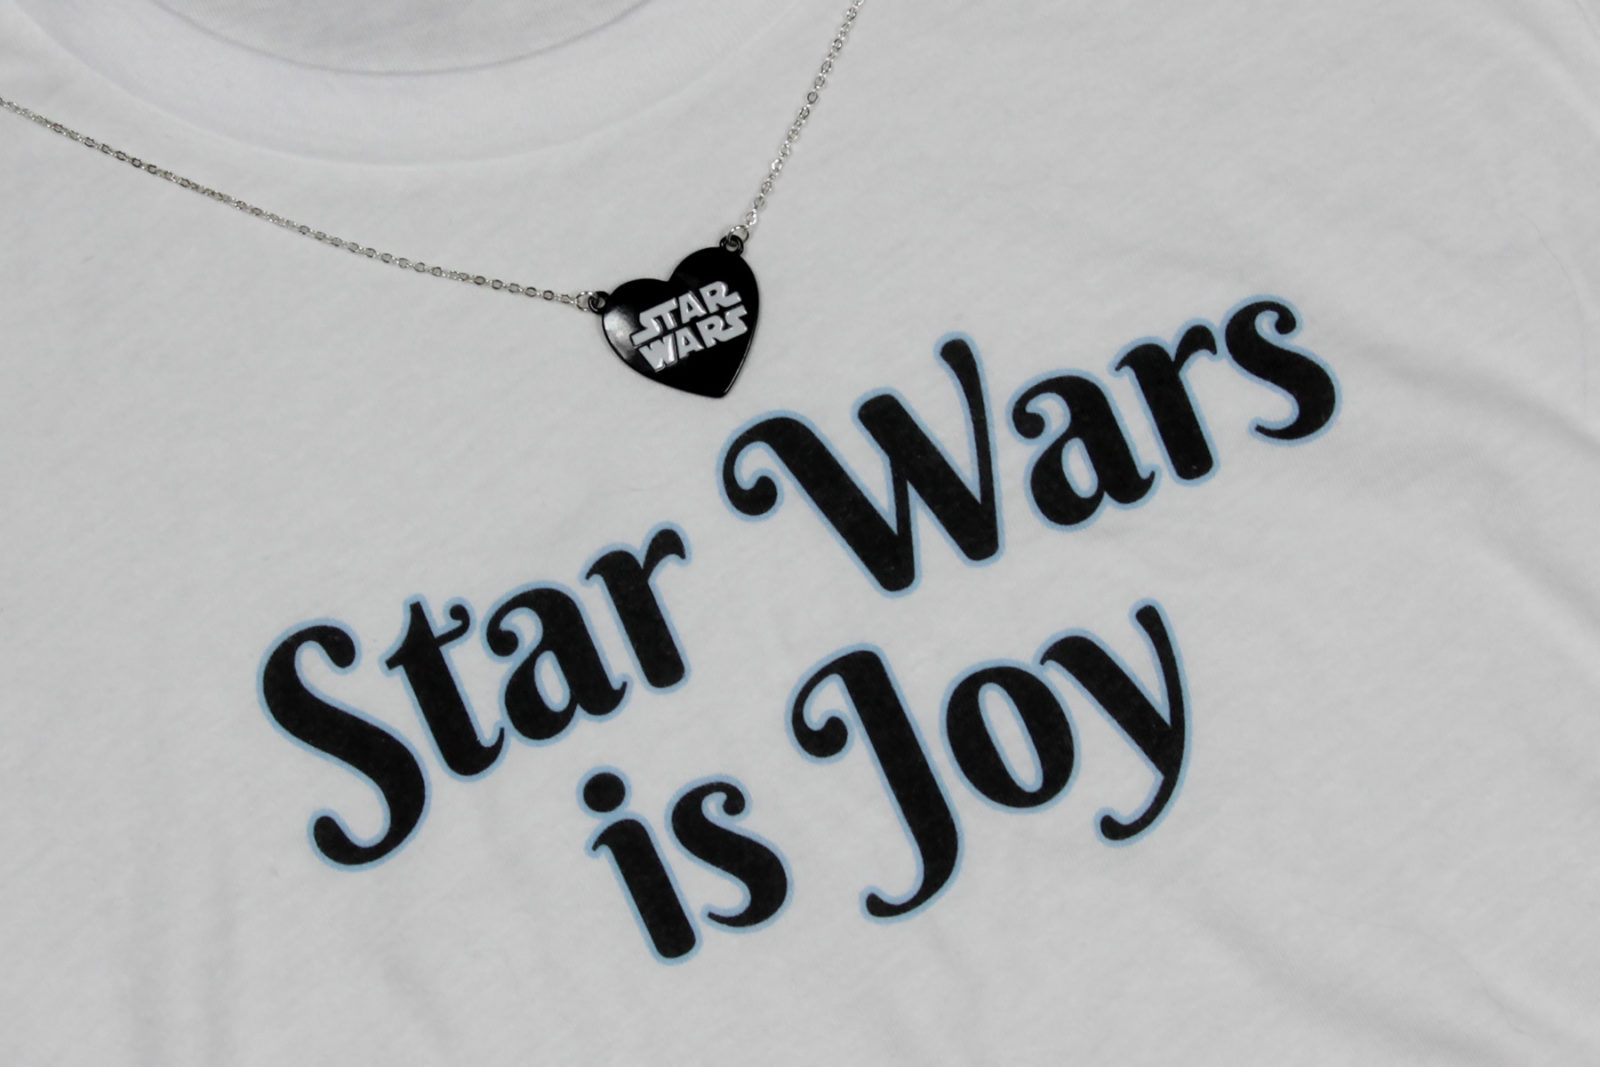 Star Wars is Joy